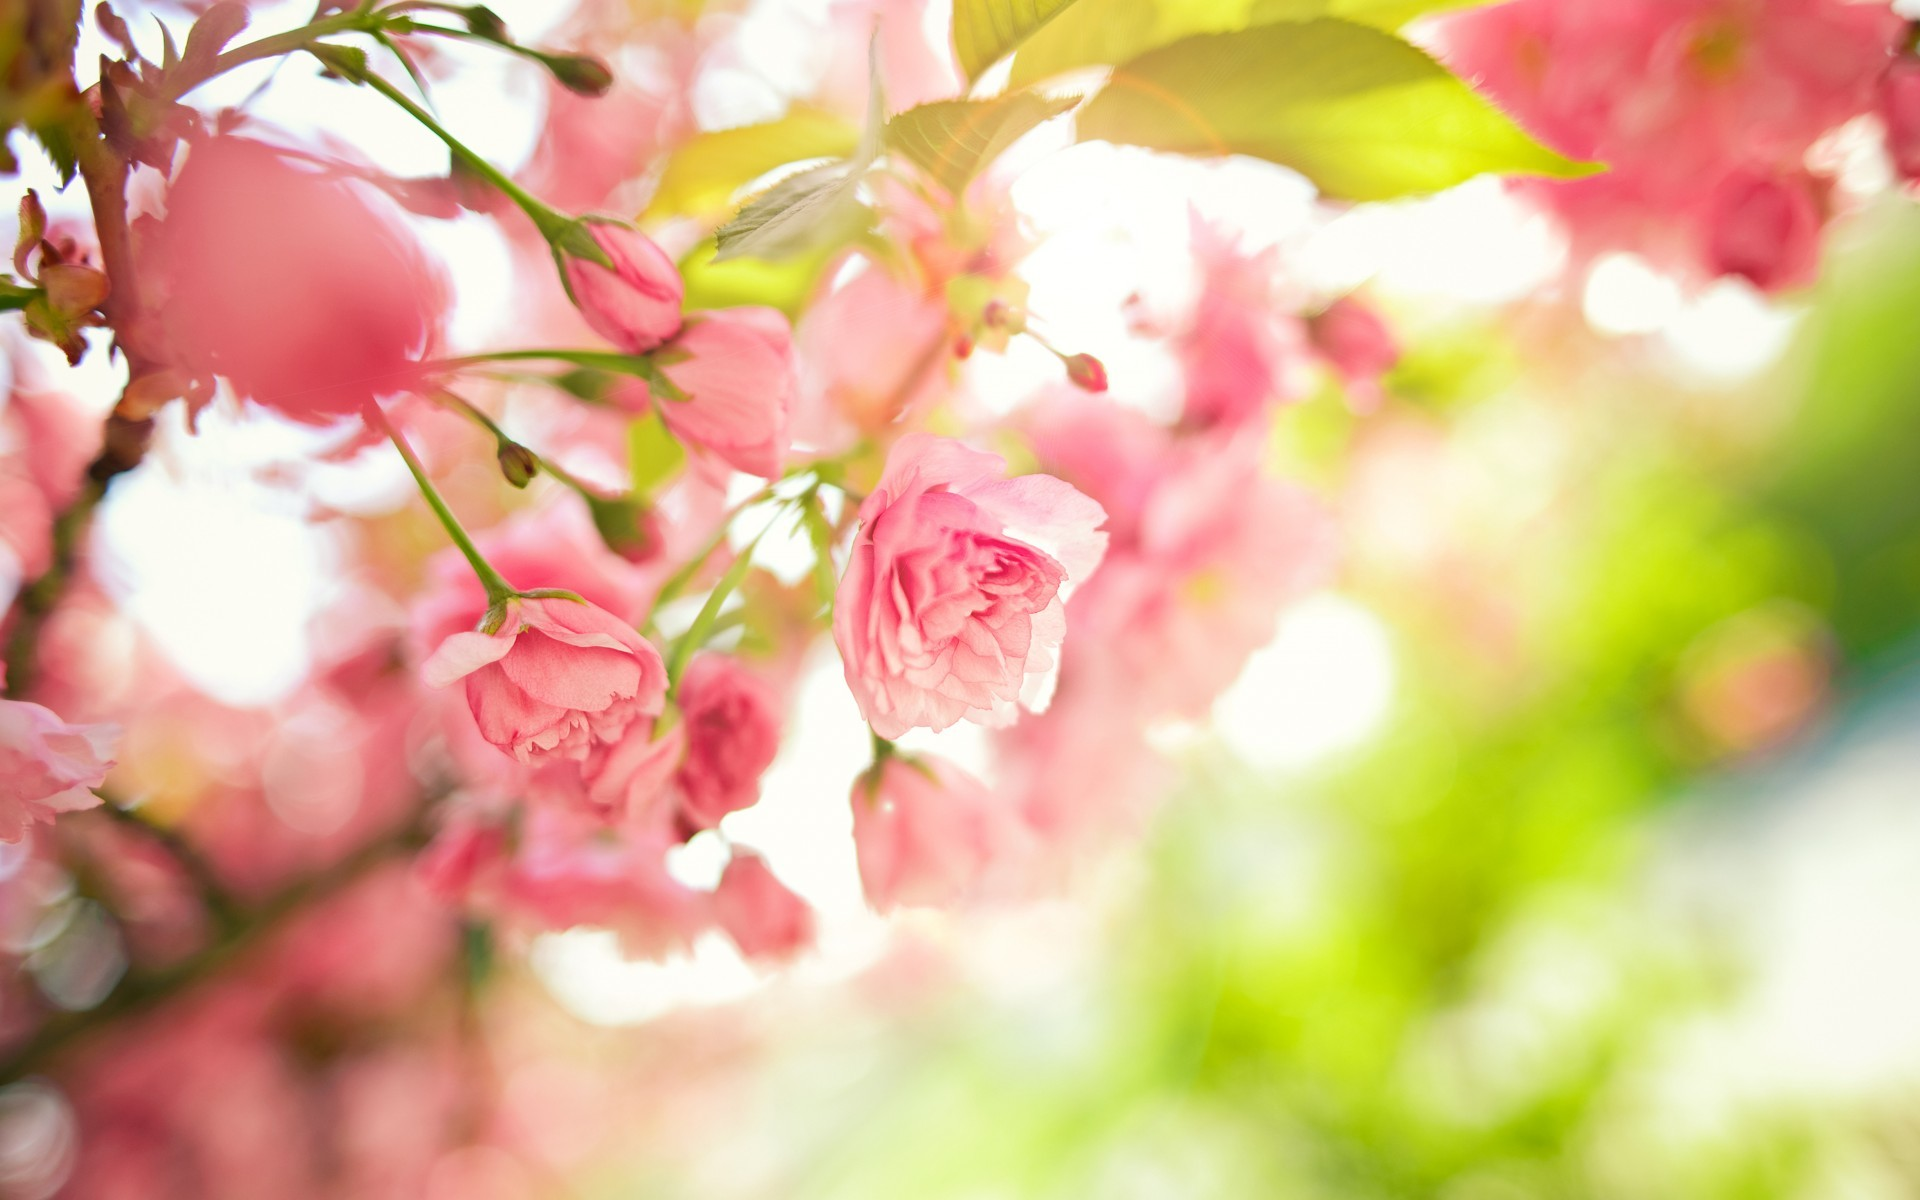 Spring flowers background 52 images 1920x1200 spring pink flowers size 1920x1200 62795 amazingpict mightylinksfo Gallery